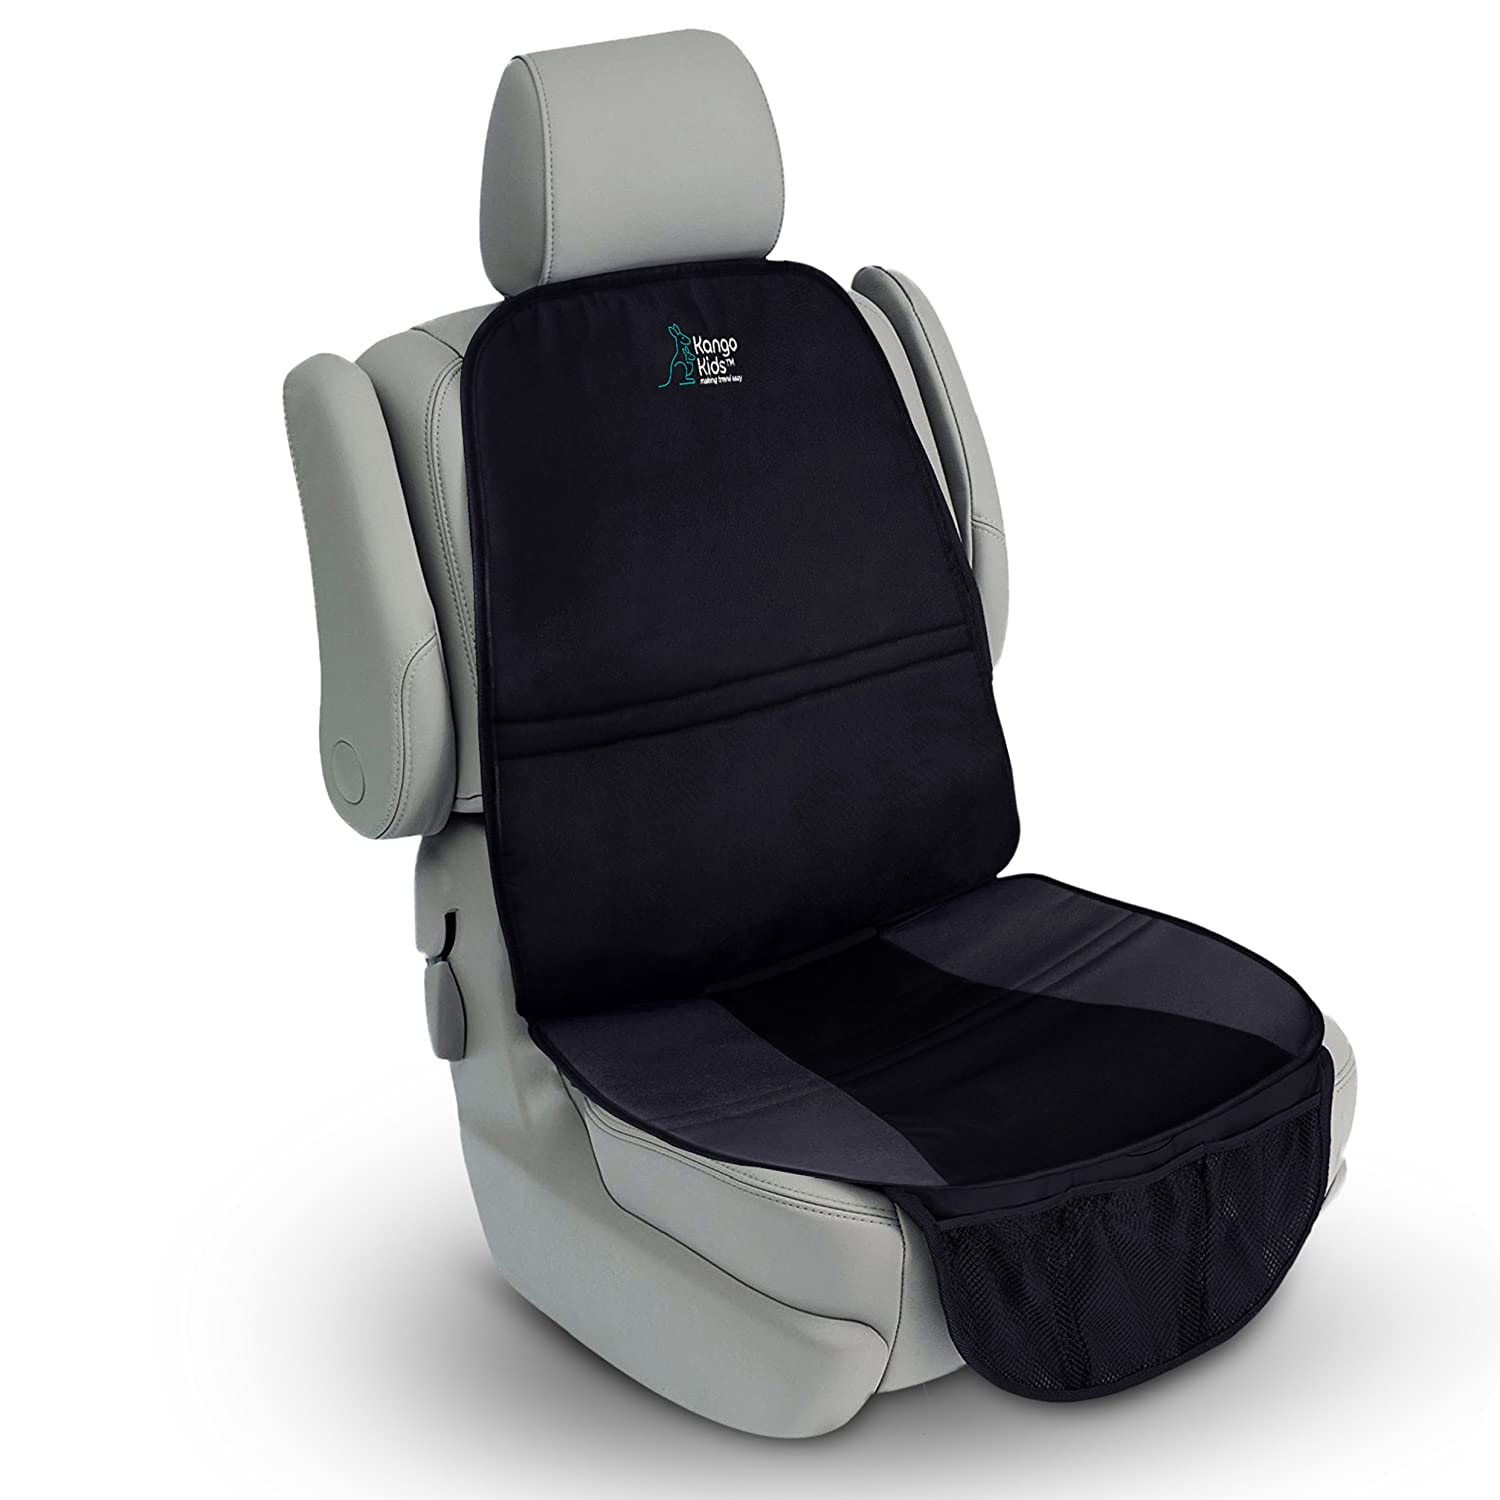 Universal Car Seat Protector – Protect your Vehicle against Spills and Scuffs. Keep your Sanity with an Organised, Clean Car. Increased Safety for your Child with Durable, Waterproof and Non-Slip Carseat Cover. Compatible with most Carseats KangoKids